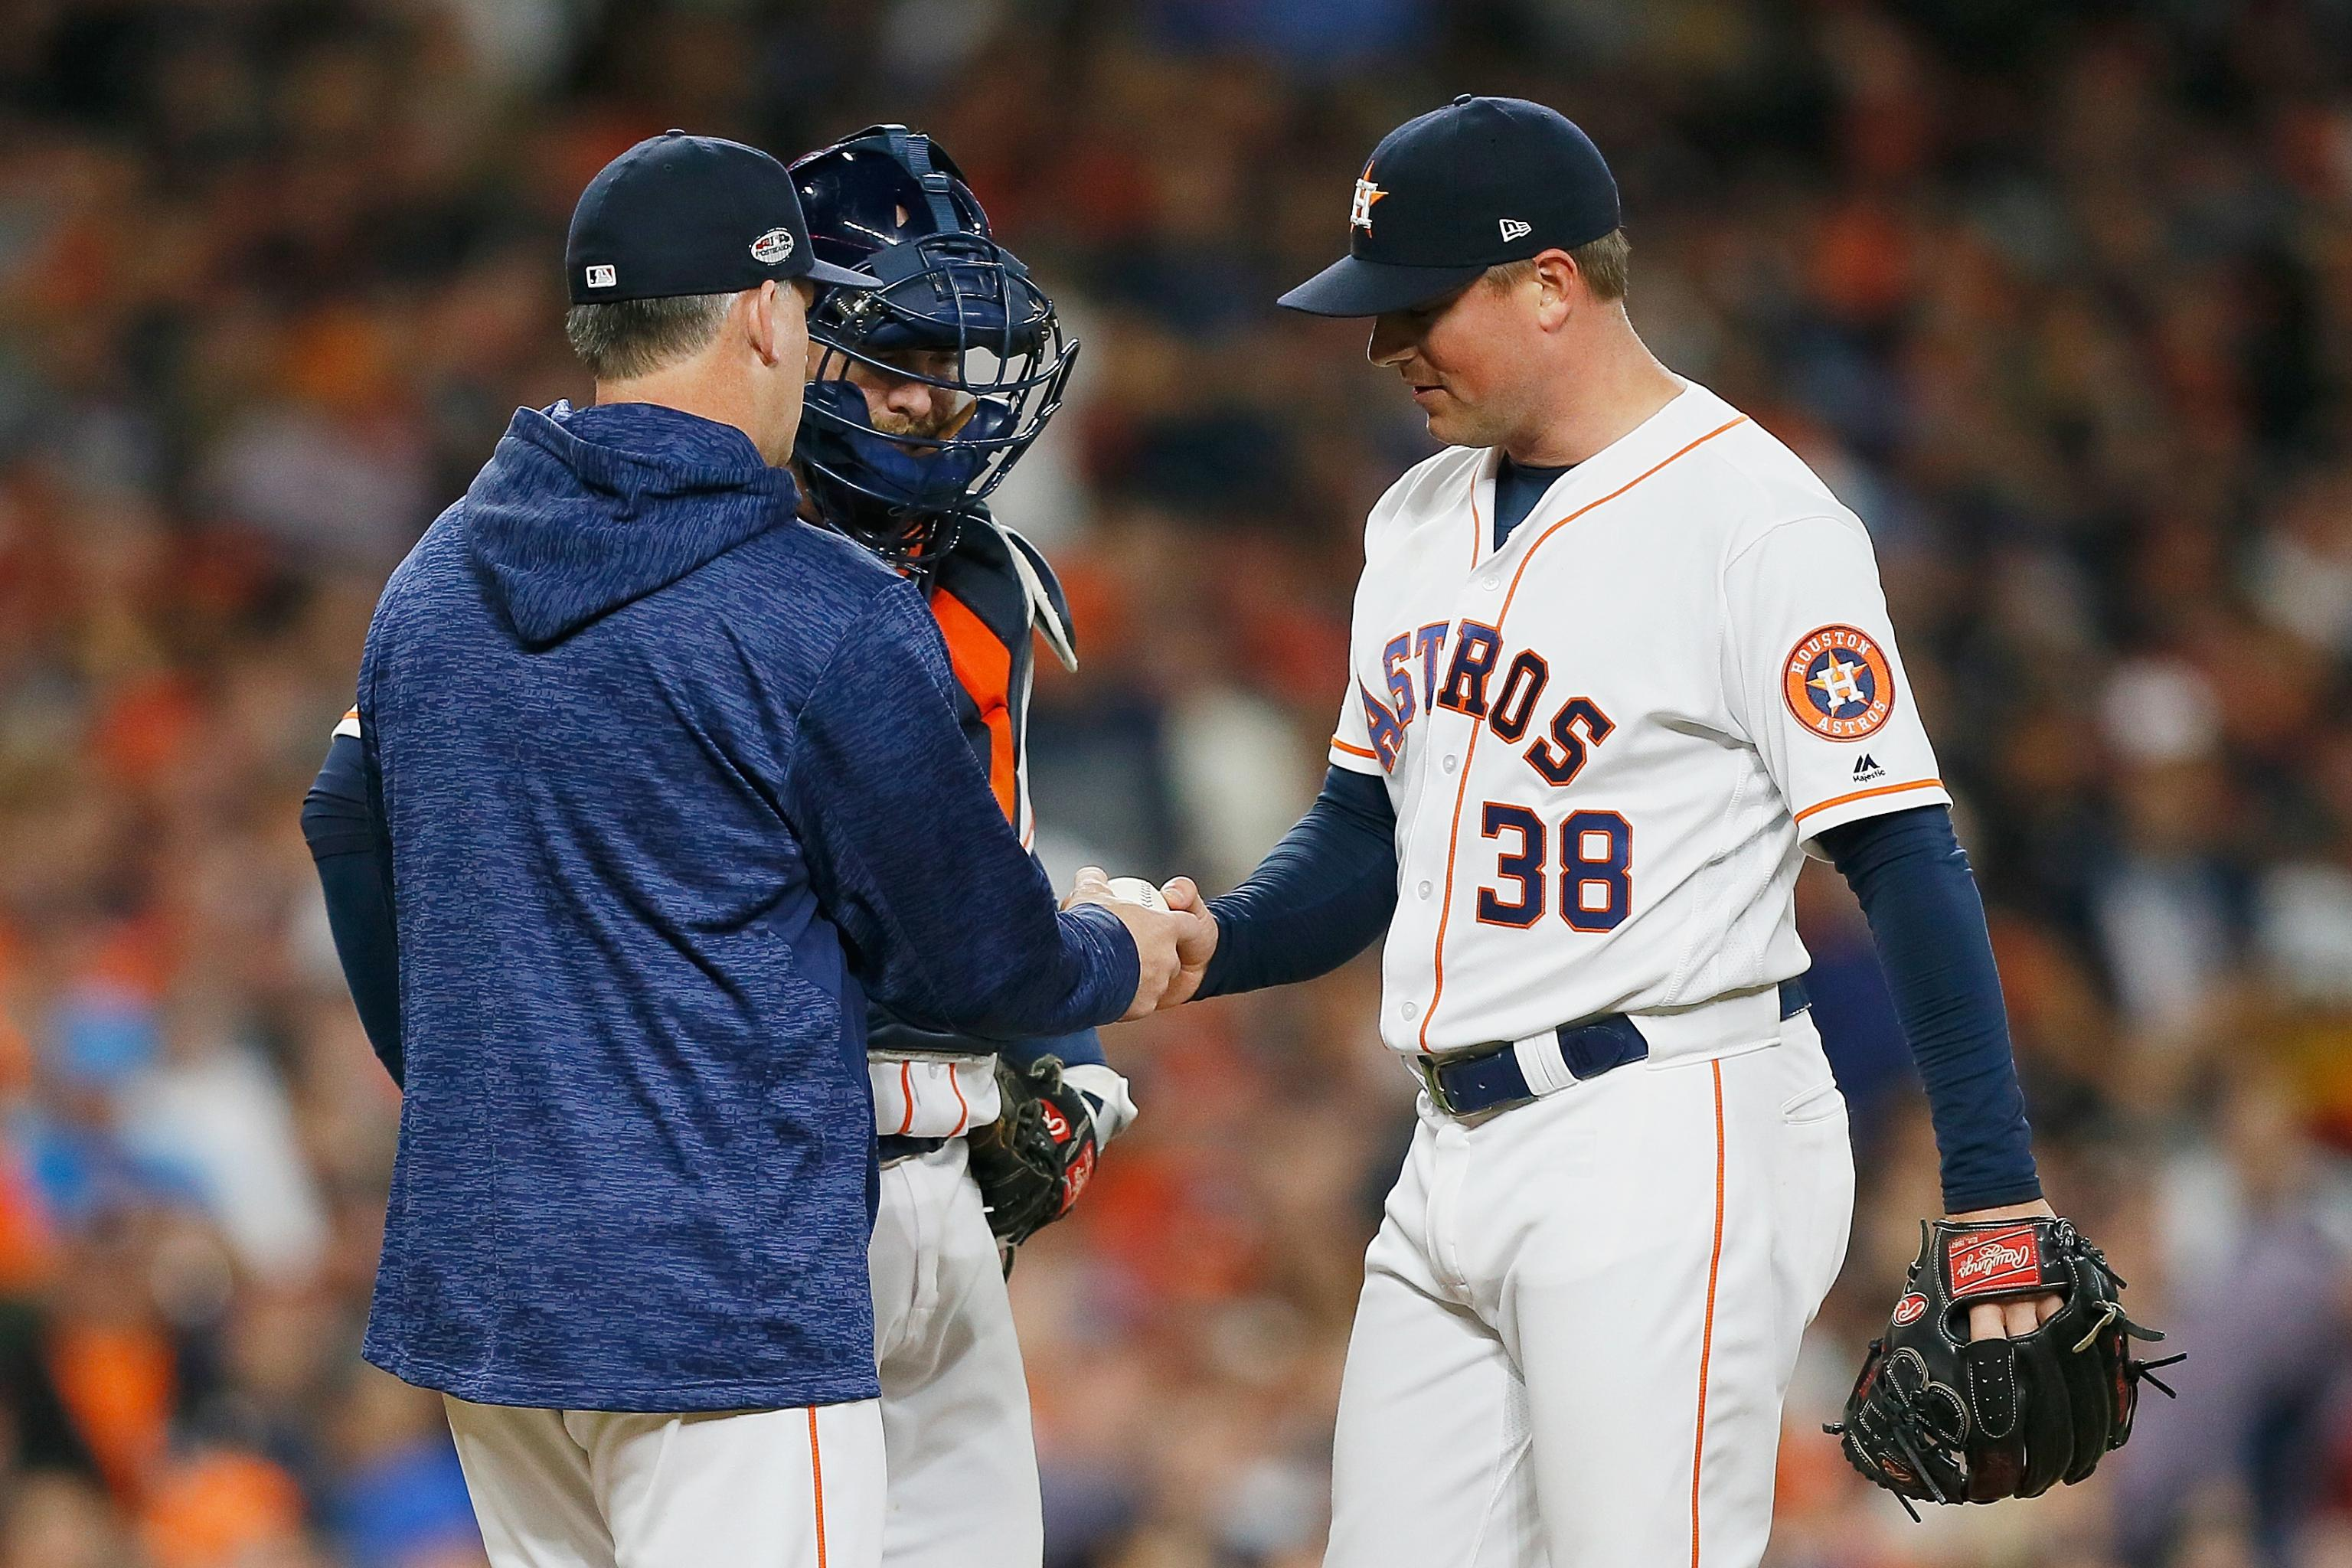 bcc979584 MLB Announces Astros Won't Be Penalized After Sign-Stealing ...